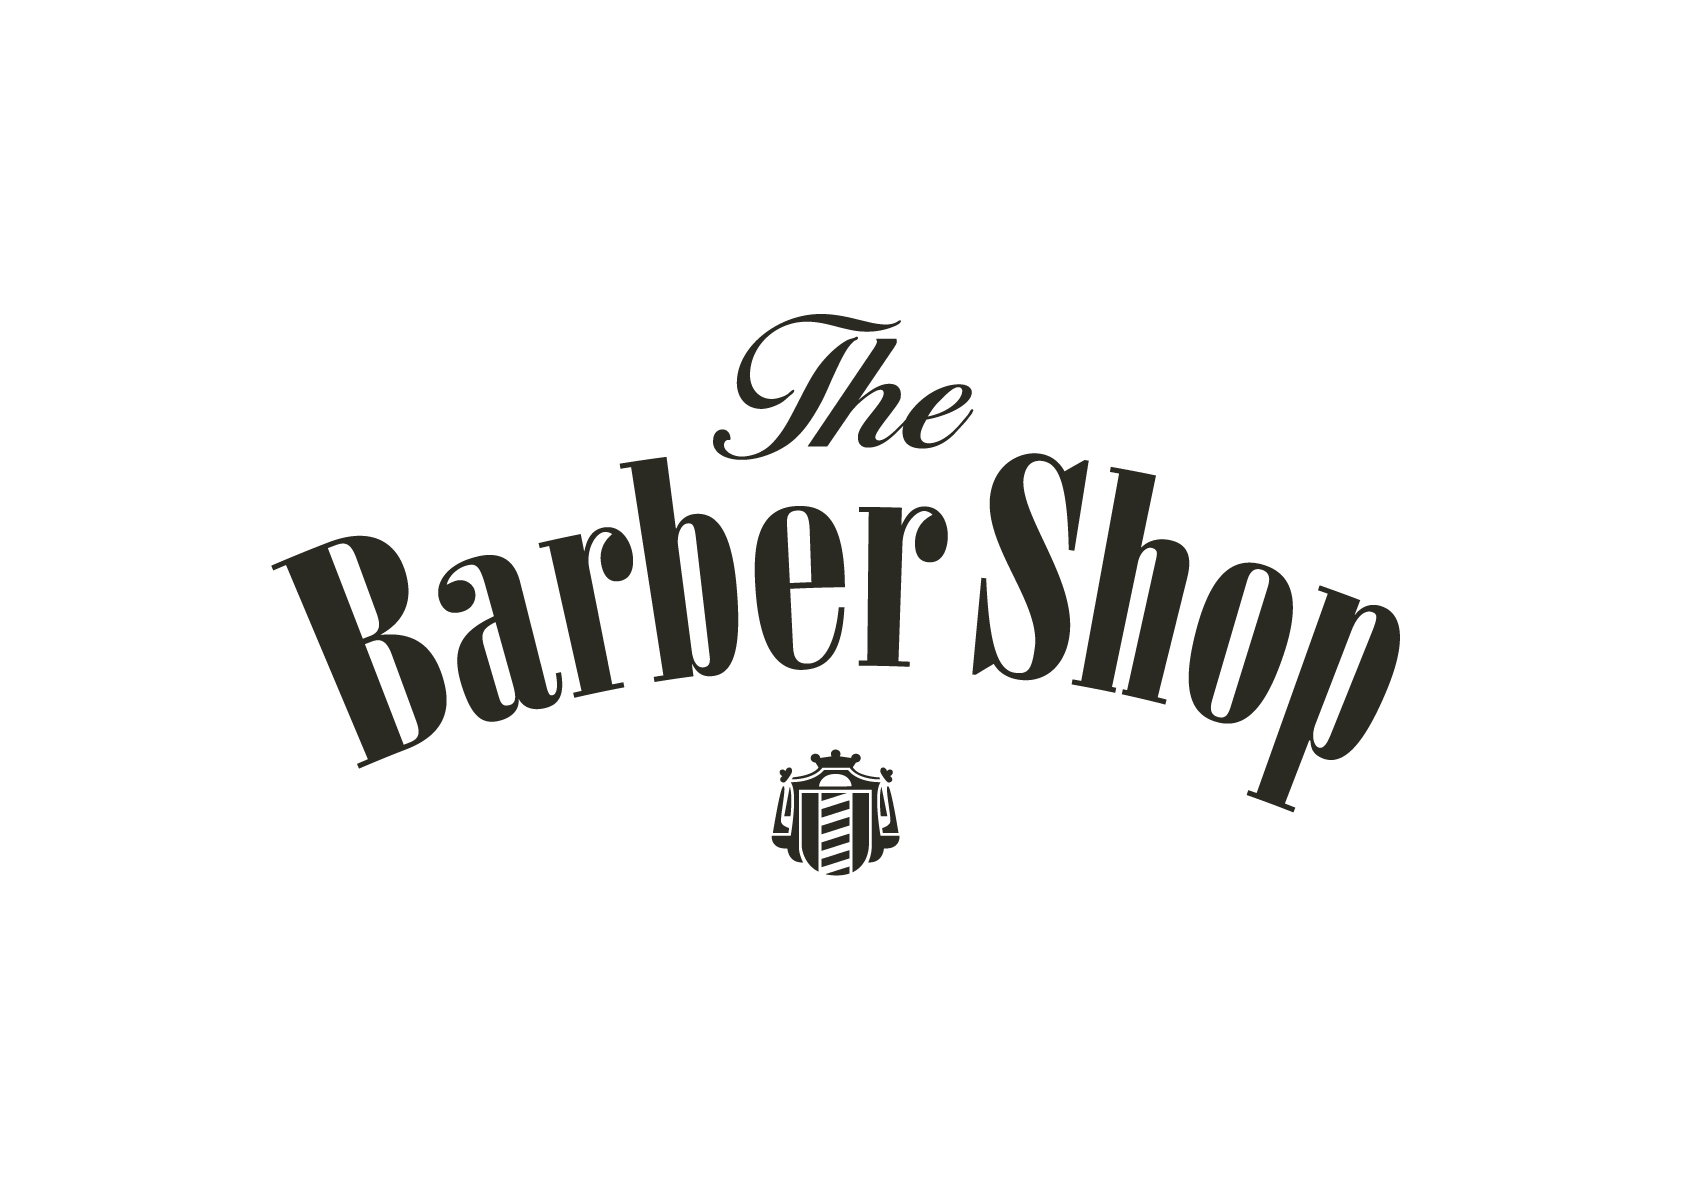 The Barber Shop | The Barber Shop Story and about us ...